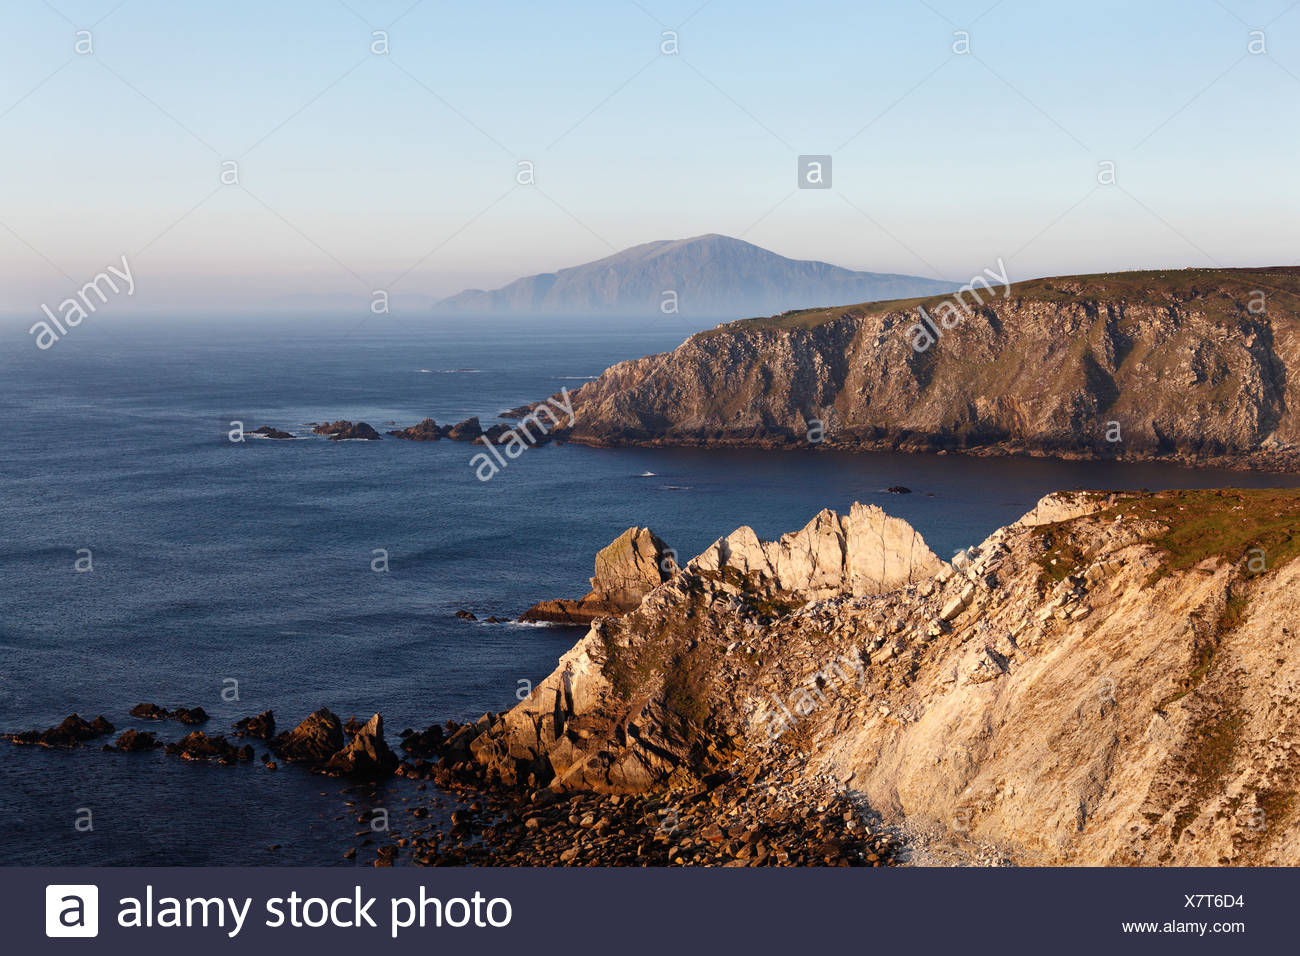 Cliffs near Ashleam, Achill Island, County Mayo, Connacht province, Republic of Ireland, Europe - Stock Image